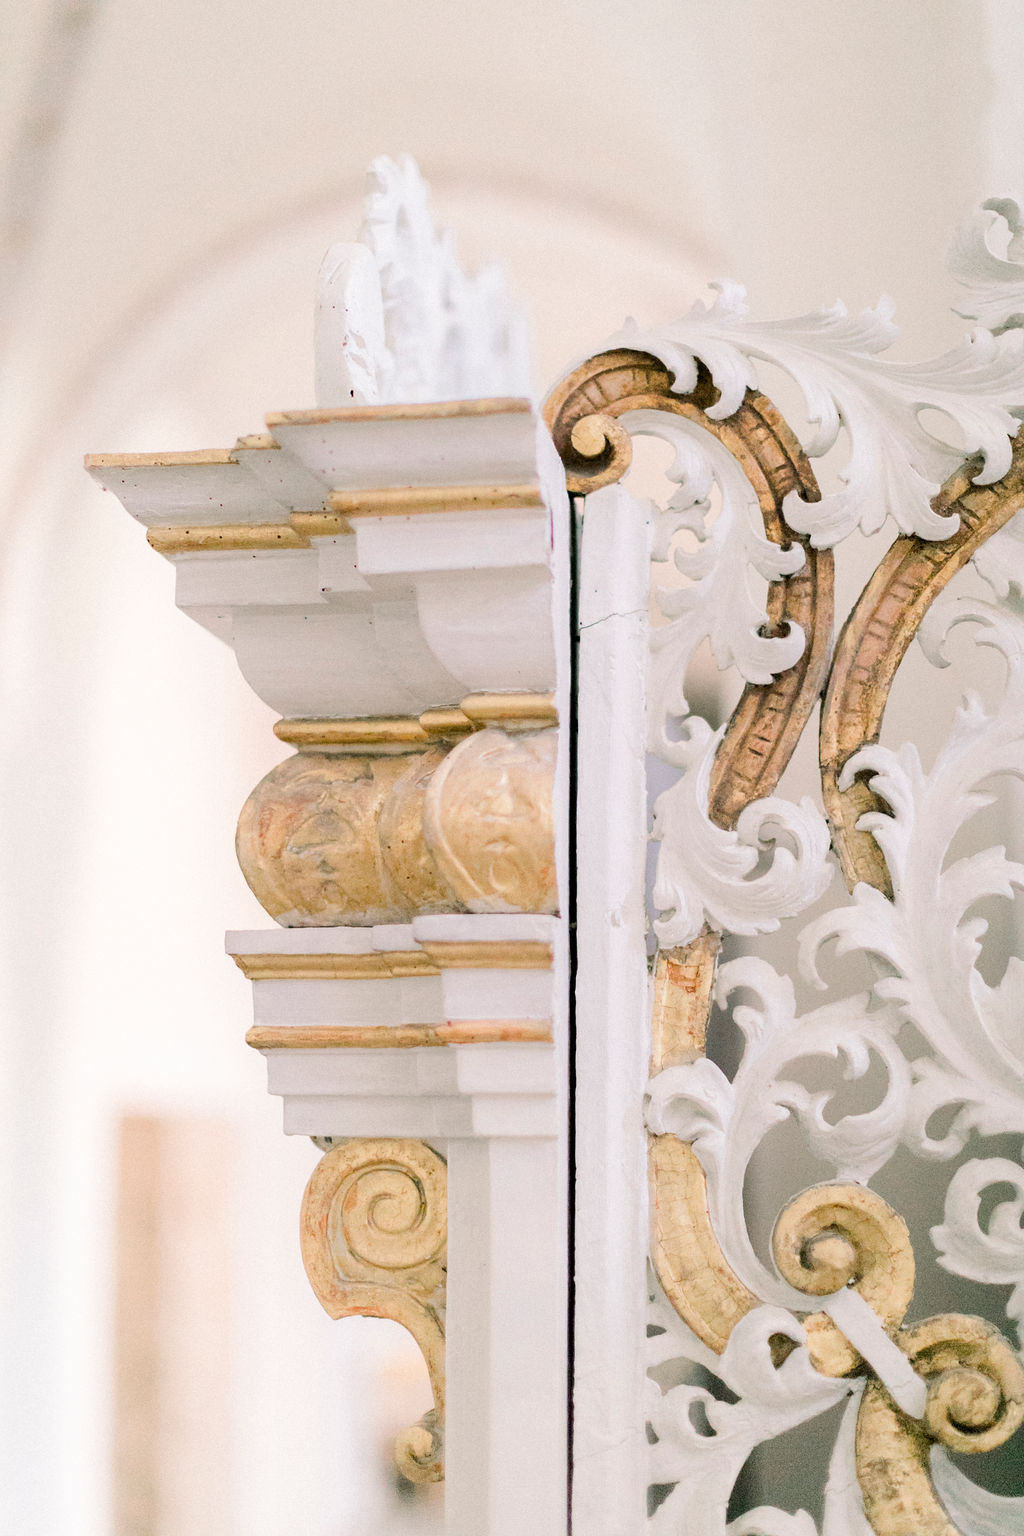 baroque ornaments, kloster wöltingerode, church wedding, wedding in germany